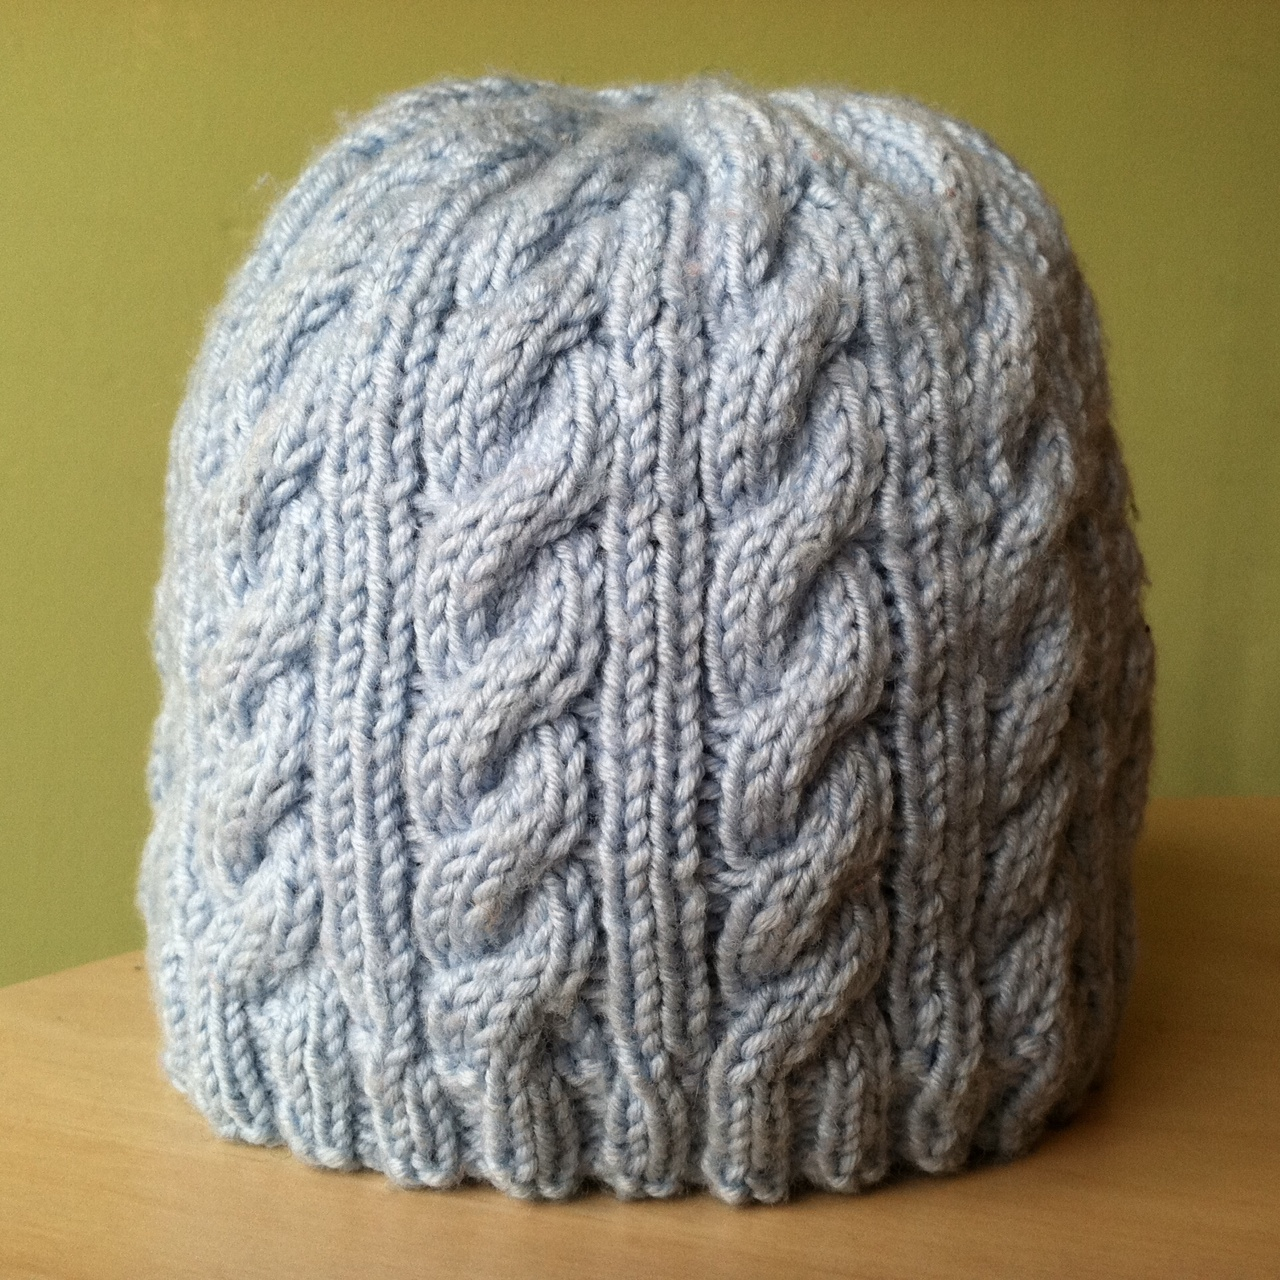 The Yarn Garden Blog  Upcoming Class  Easy Baby Cable Knit Hat a307fcbdee3